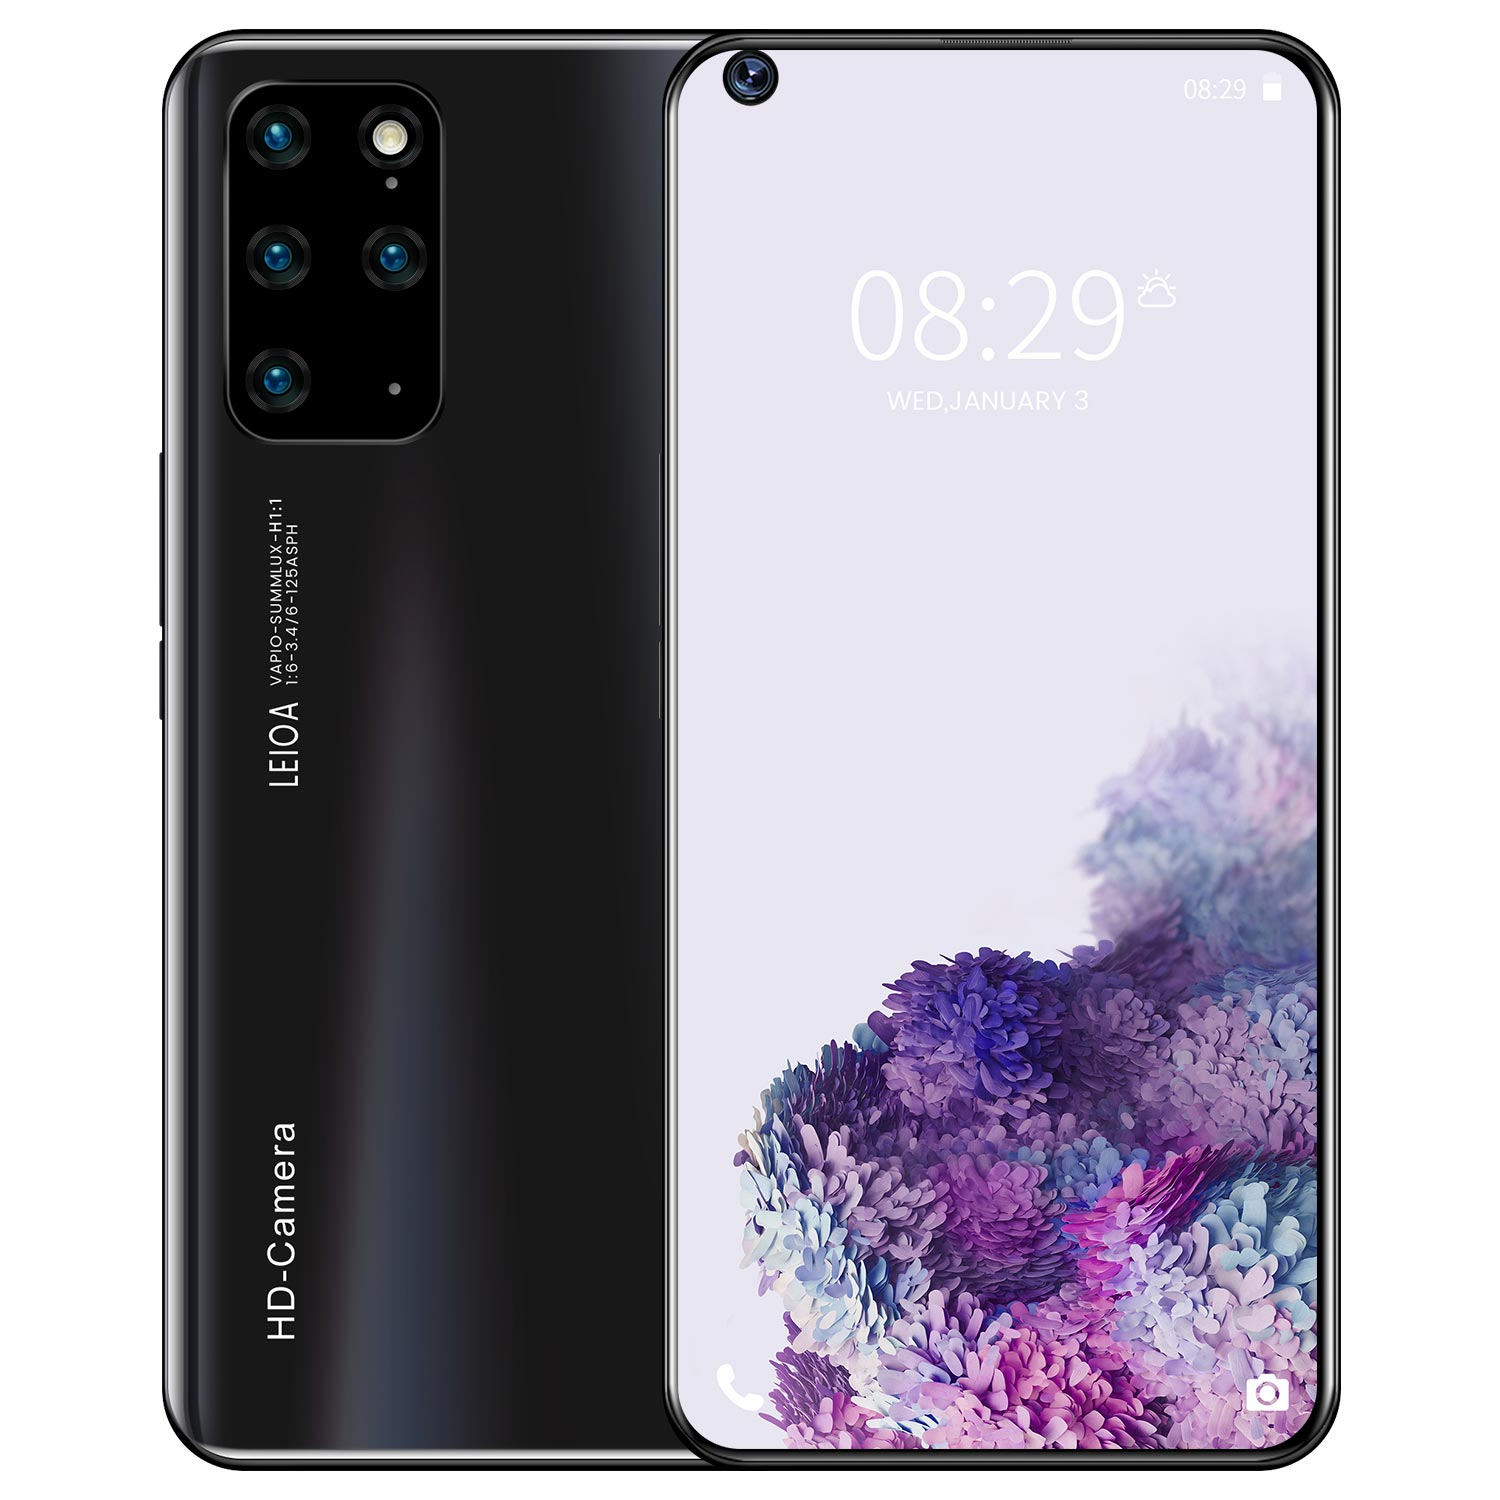 Galay S21+Ultra Smartphone 7.2 HDinch 12GB+512GB 5800mAh Global Version 4G/5G Android10.0 Mobile phone Celulares Cellphone 3